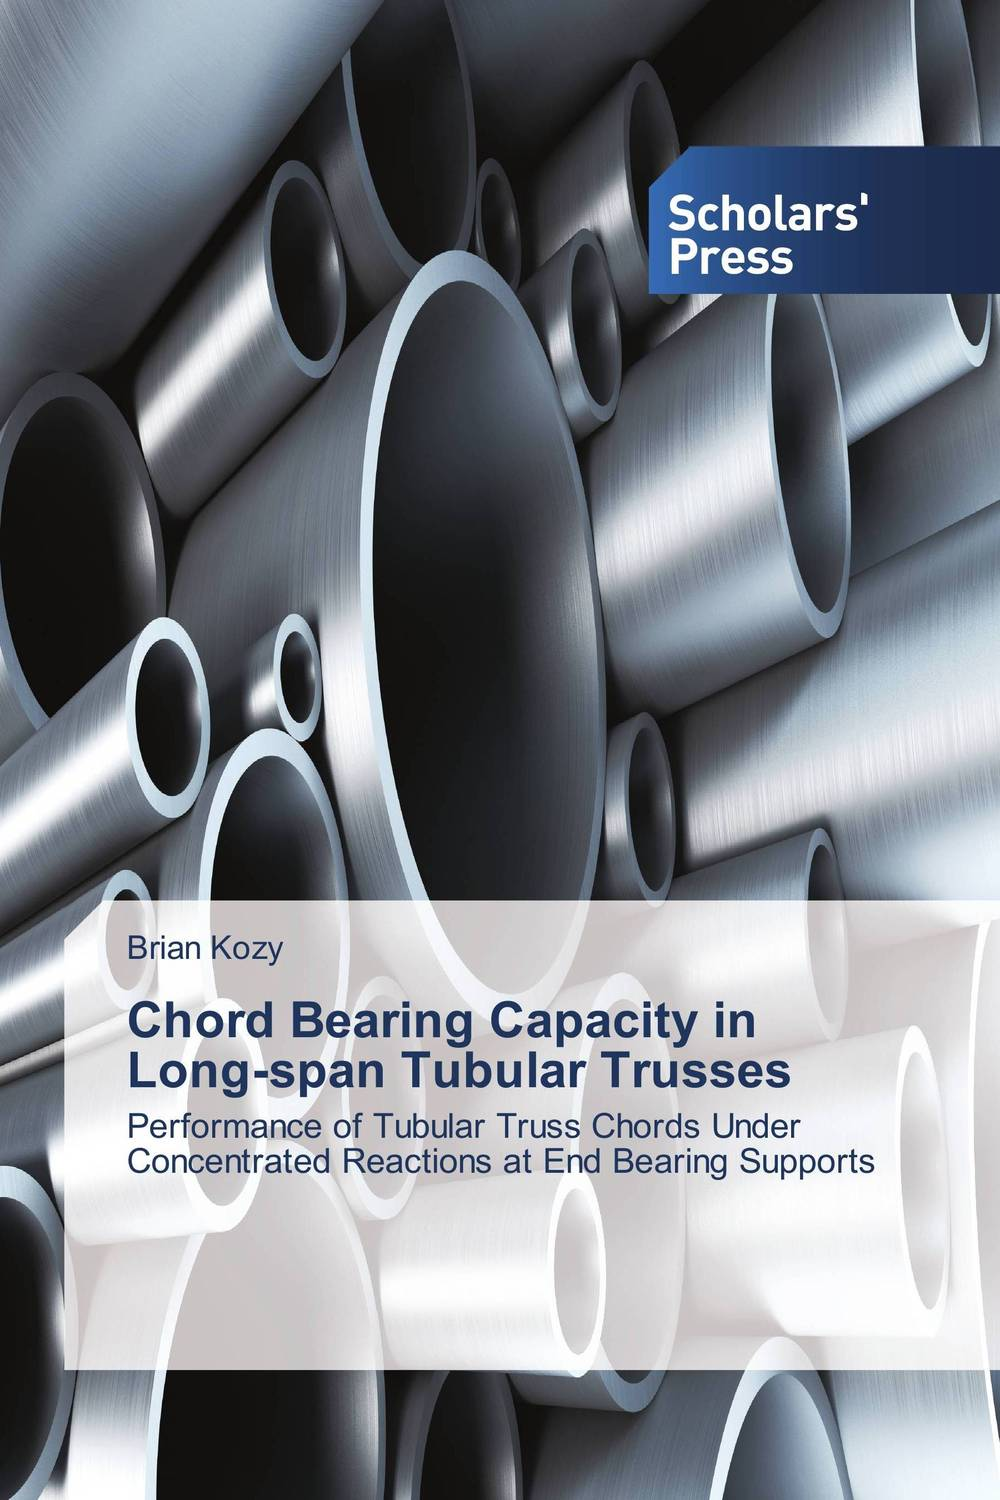 Chord Bearing Capacity in Long-span Tubular Trusses an affair of state – the investigation impeachment